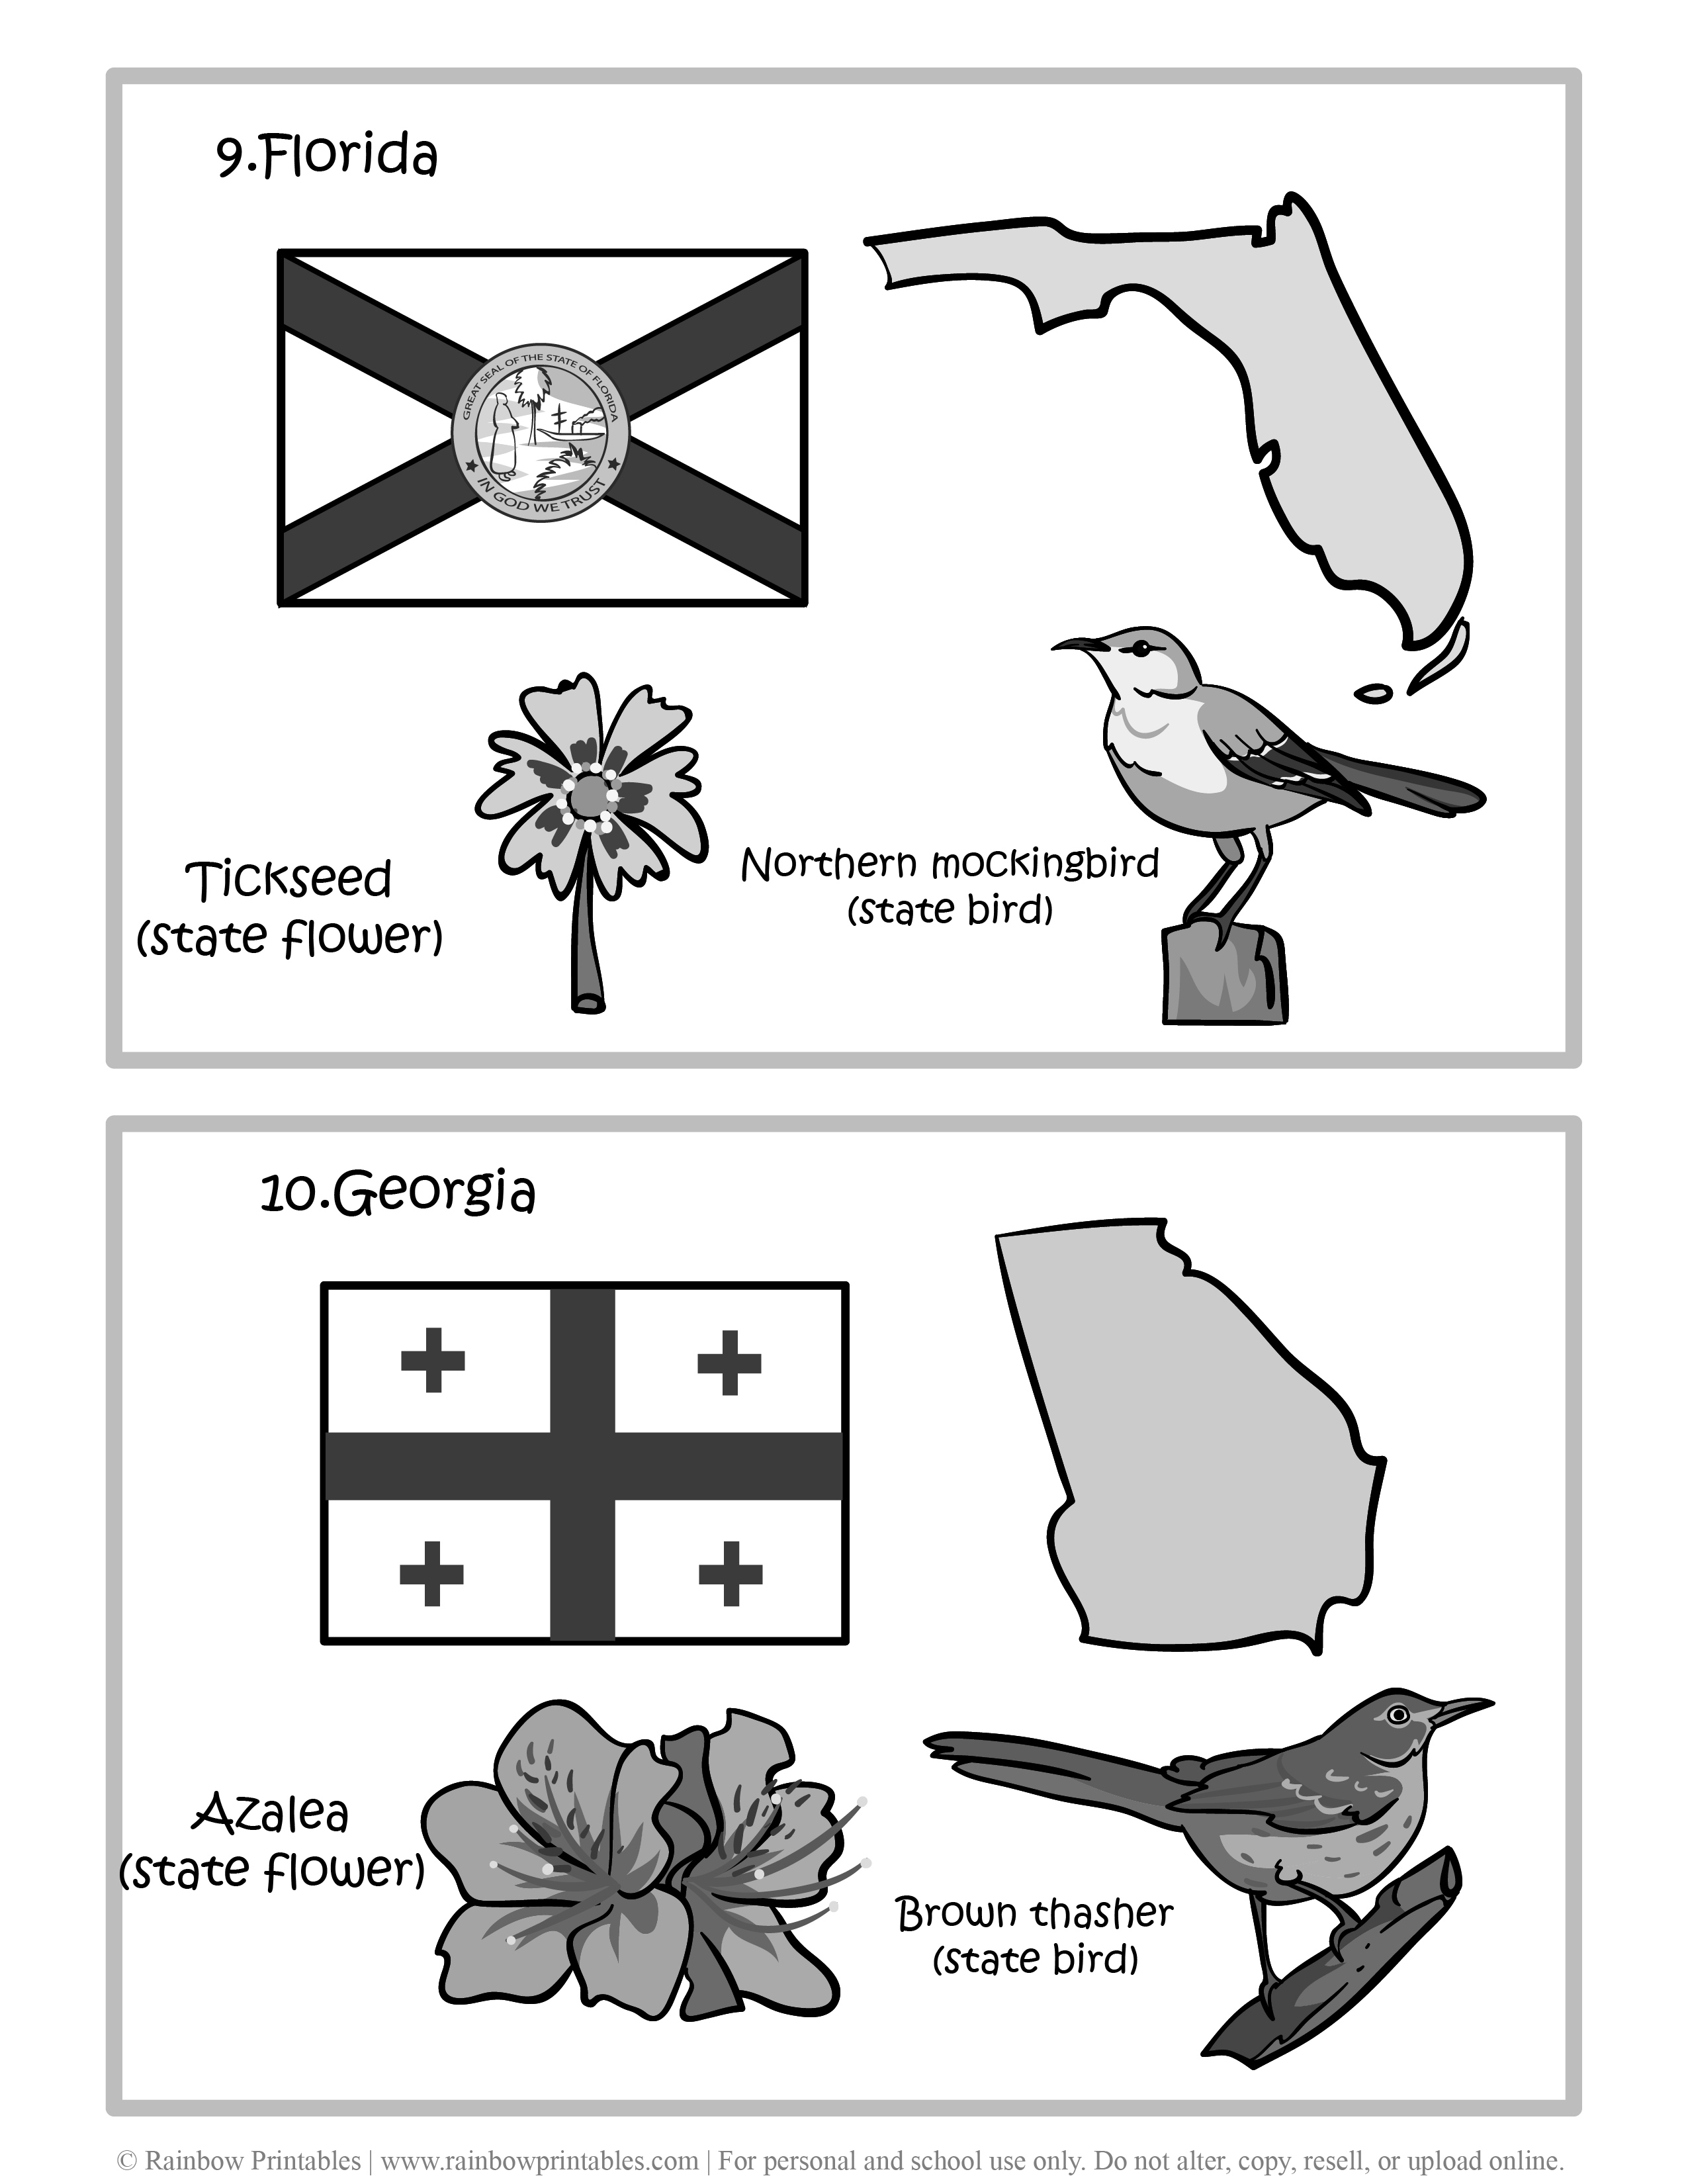 Florida, Georgia, 50 US State Flag, State Bird, State Flower, United States of America - American States Geography Worksheet Class Lesson Printables Flashcards Black White